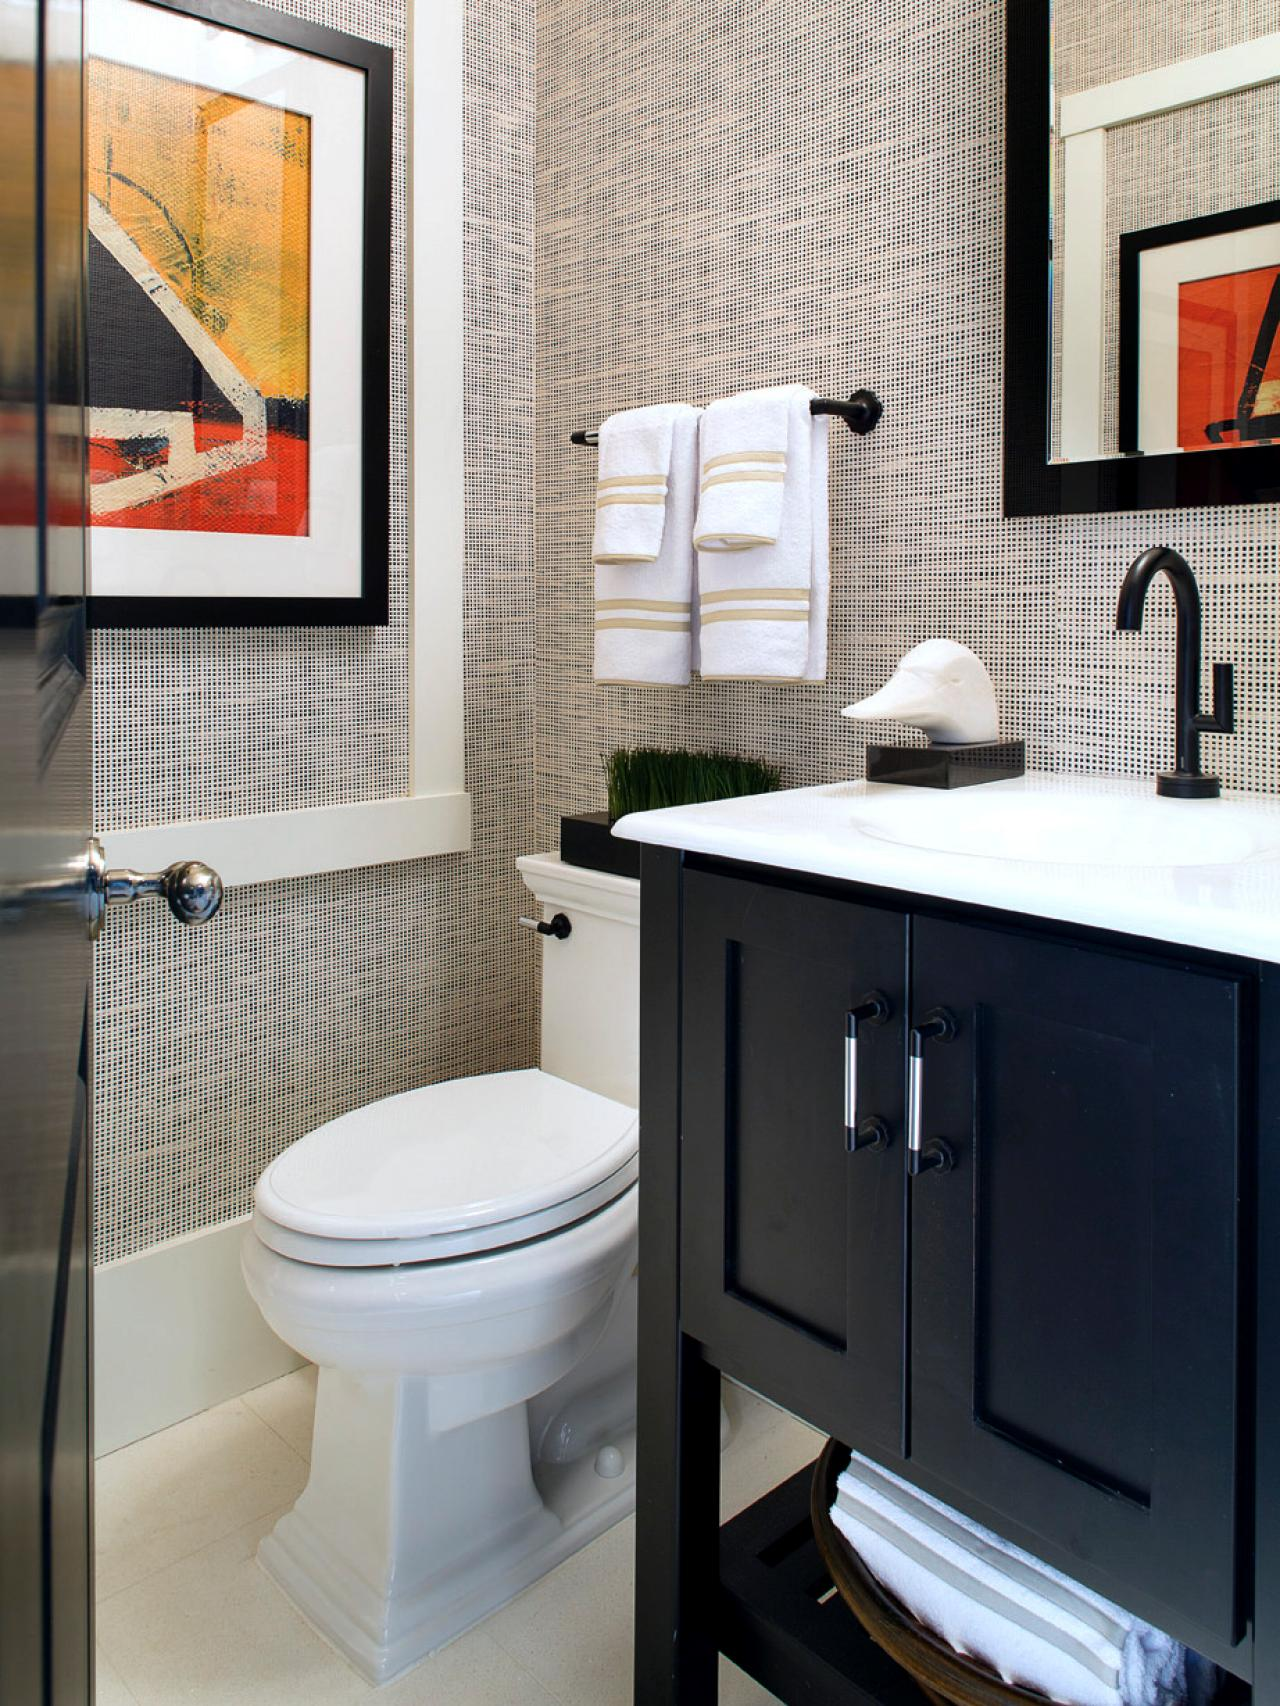 30 expert tips for increasing the value of your home hgtv - Pictures of small bathrooms ...